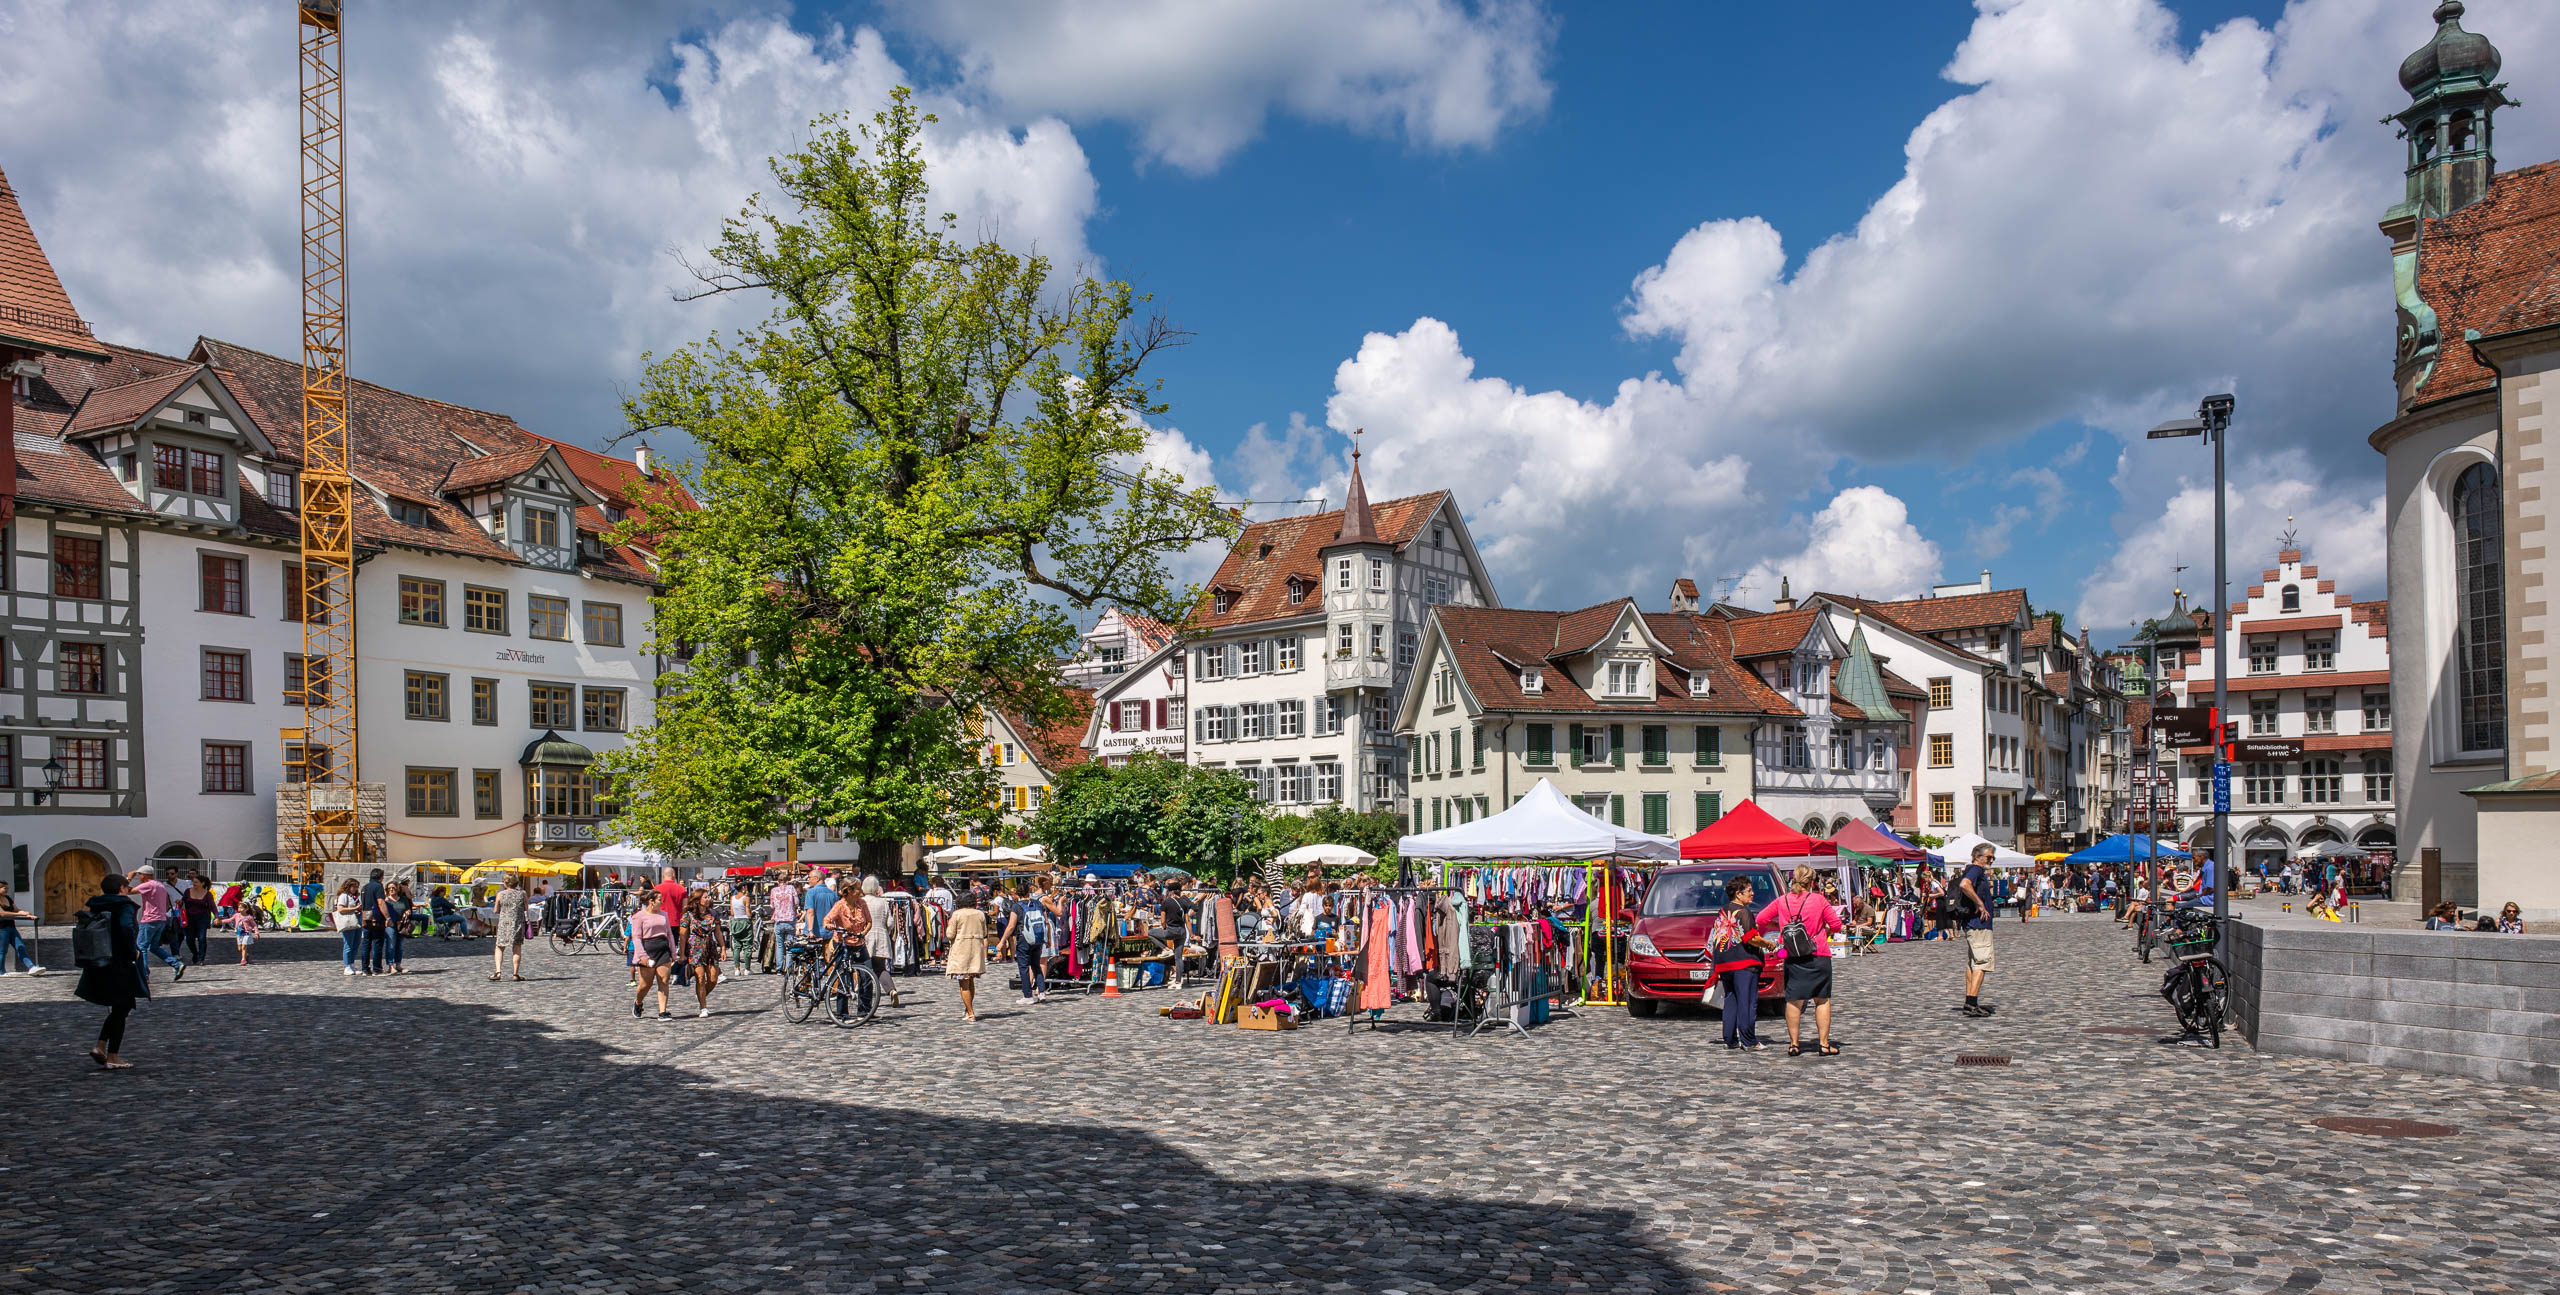 Gallusplatz-St-Gallen-Flohmarkt-August-2019